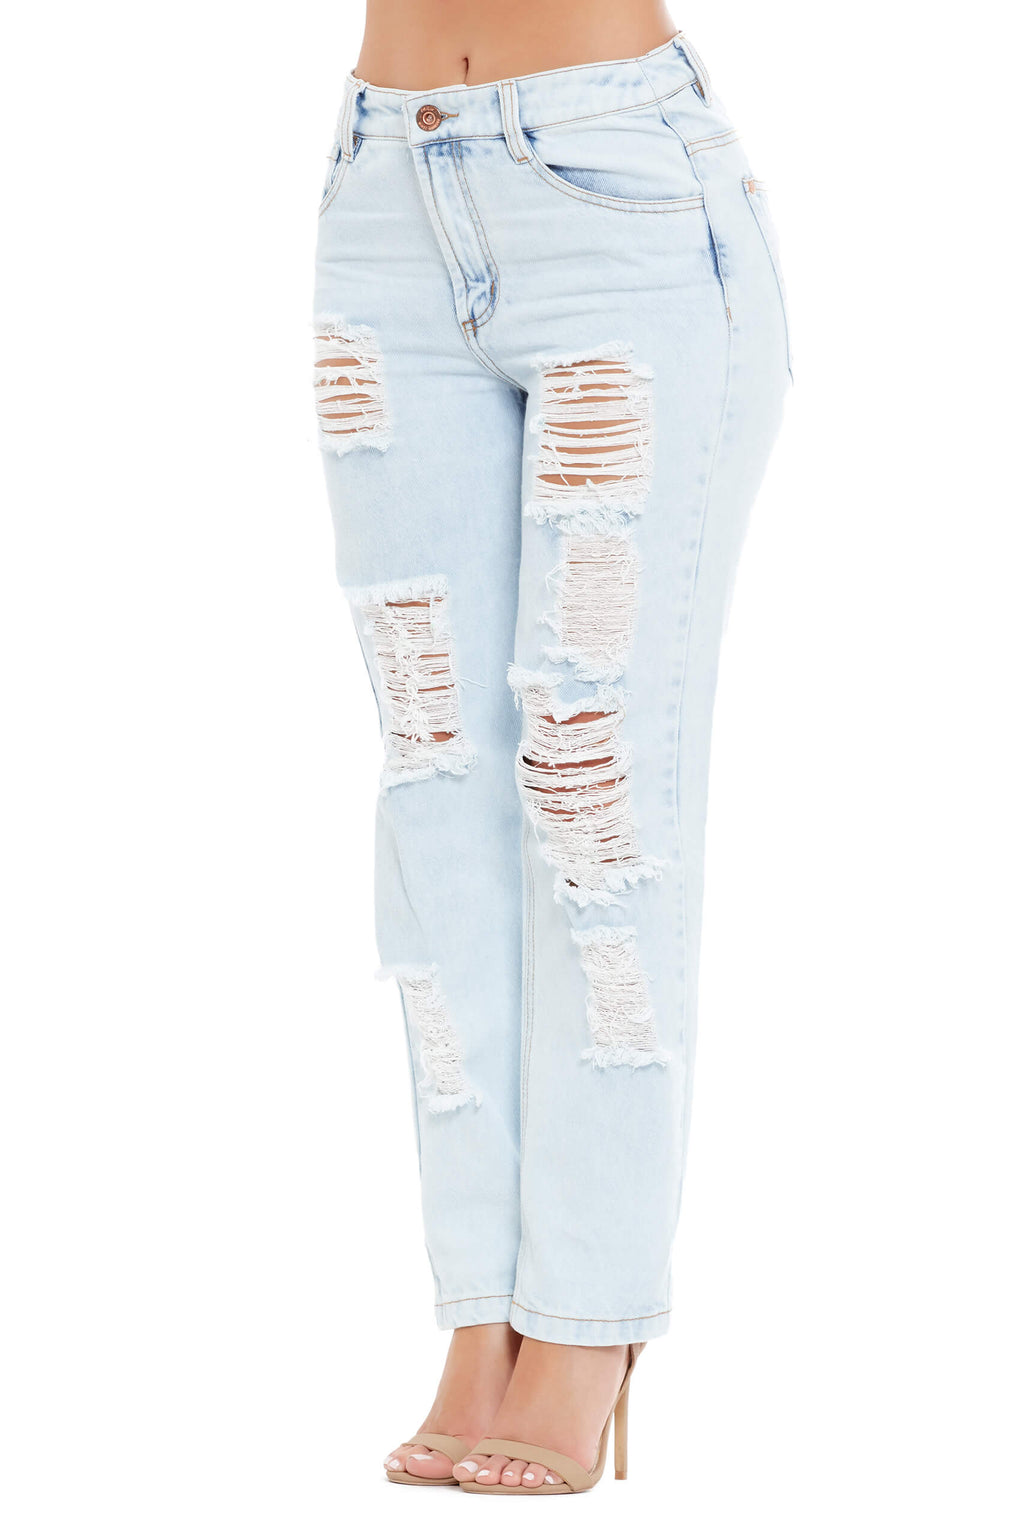 Ripped Boy Friend Jeans